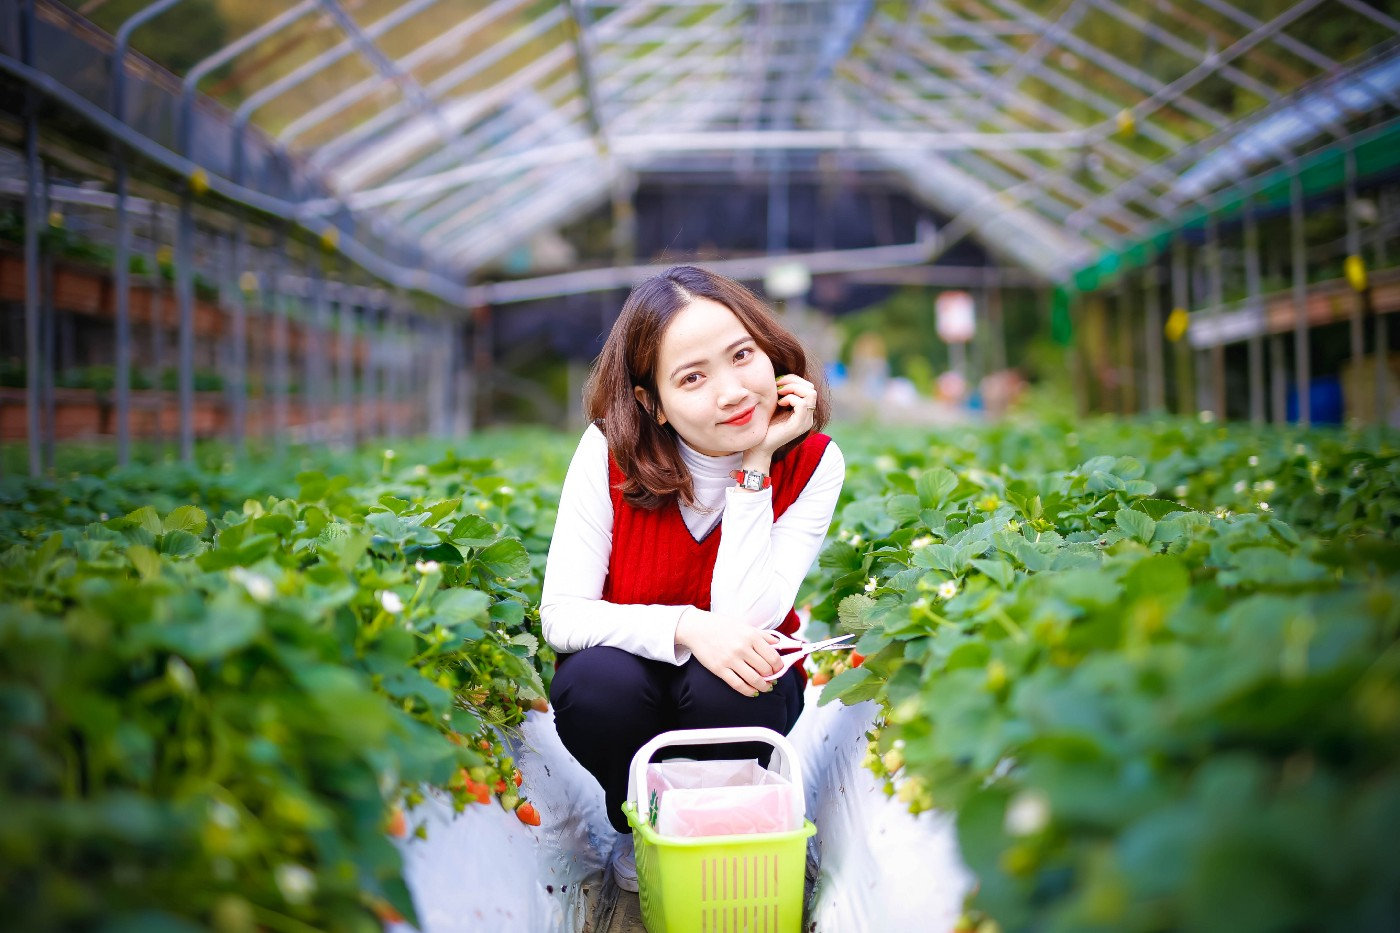 Woman smiling in a green house